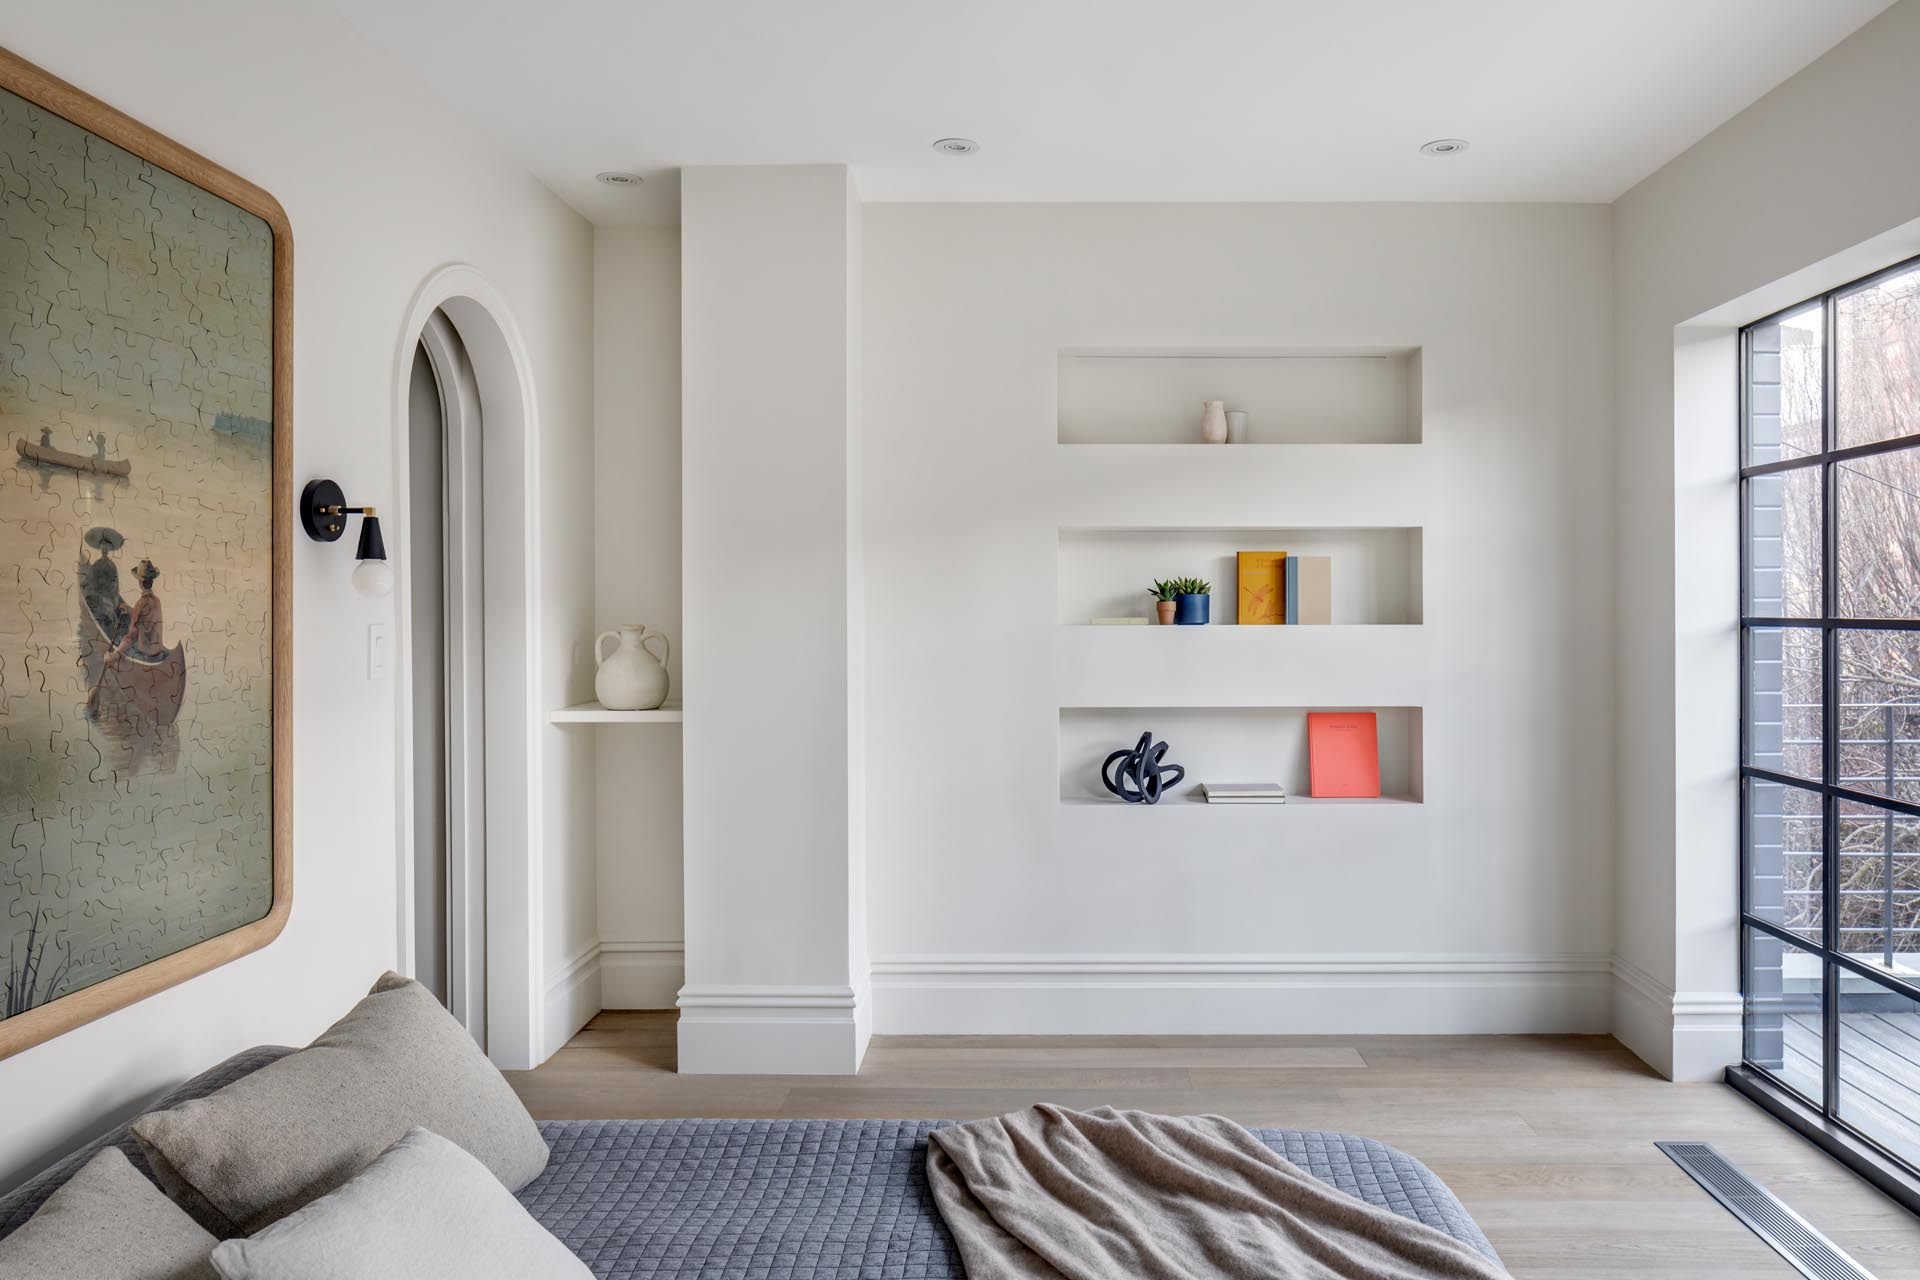 A modern master bedroom with built-in shelving niches, and an arched doorway.